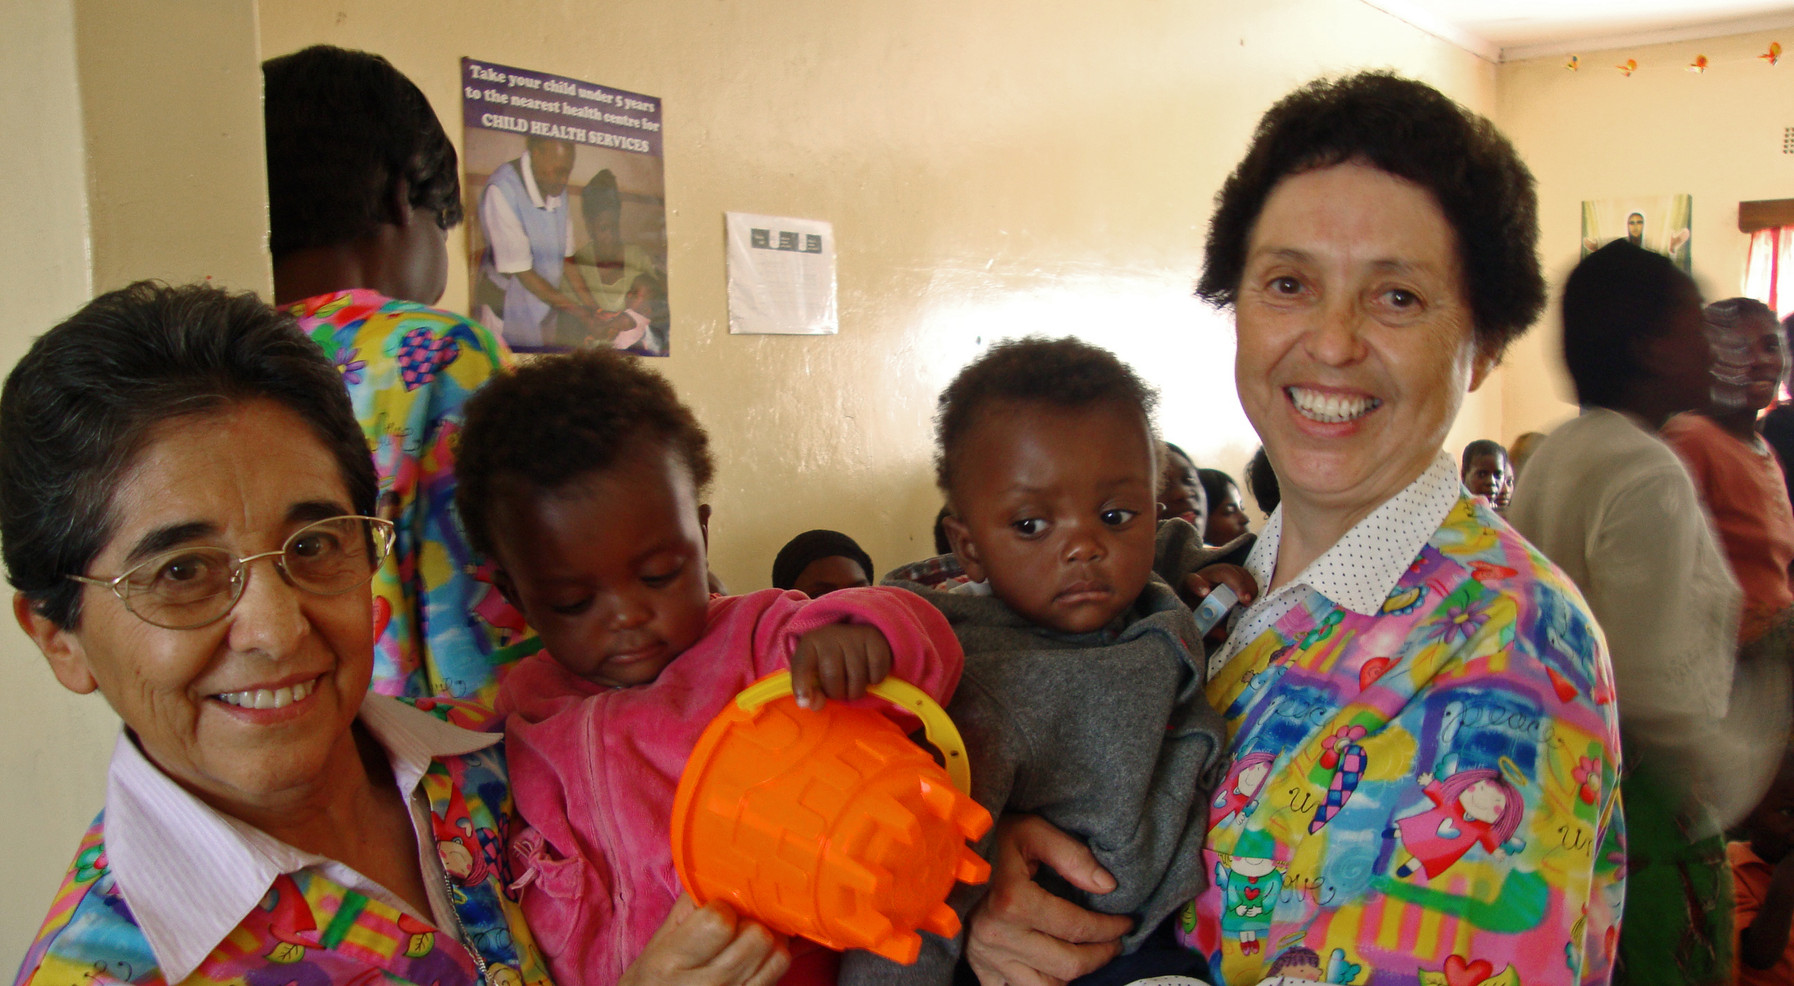 In 2000, the Congregation opened a mission in Zambia. The Mother and Infant Care Program was established by the Sisters to prevent mother-to-child transmission of HIV. Since its inception, the program has been extremely effective in achieving its goal. Sr. María Cristina Vargas (left) and Sr. Rosa Margarita Valdés (right) were the first to go to Zambia.